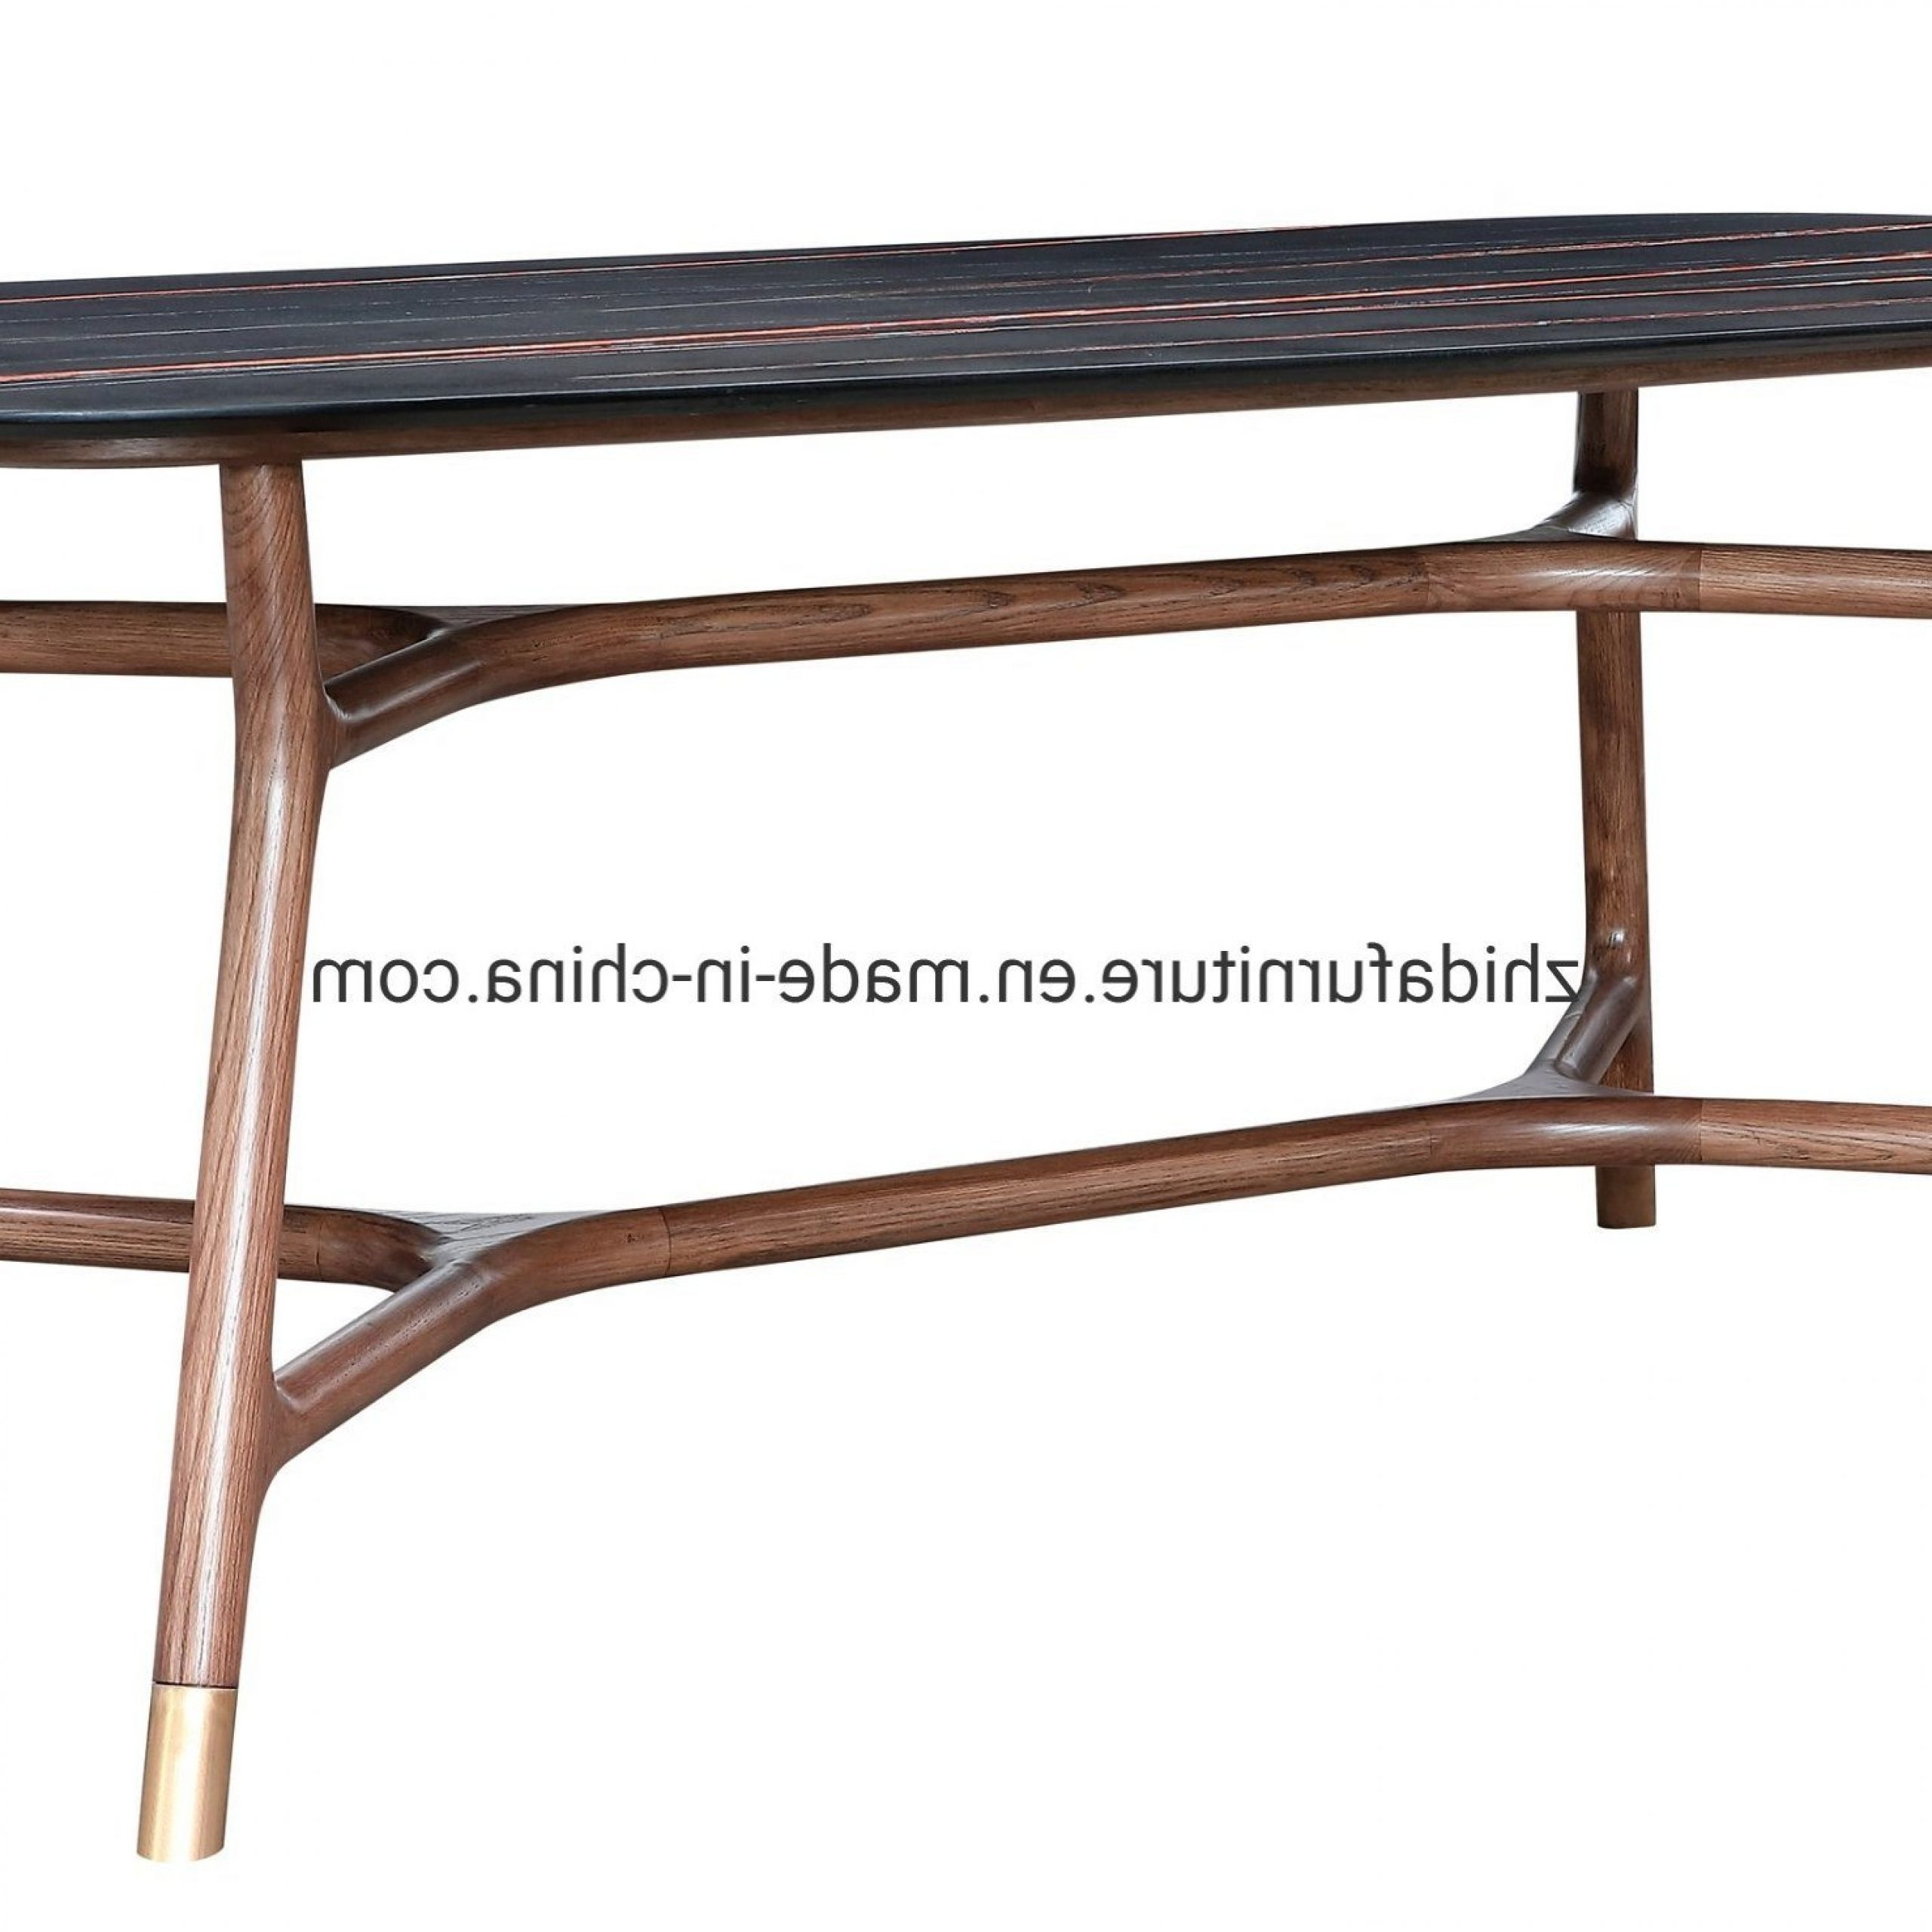 [%[hot Item] Modern Black Marble Top Dining Table With Wooden Base Pertaining To Well Known Wood Top Dining Tables|wood Top Dining Tables With 2017 [hot Item] Modern Black Marble Top Dining Table With Wooden Base|famous Wood Top Dining Tables Inside [hot Item] Modern Black Marble Top Dining Table With Wooden Base|widely Used [hot Item] Modern Black Marble Top Dining Table With Wooden Base Intended For Wood Top Dining Tables%] (View 8 of 30)